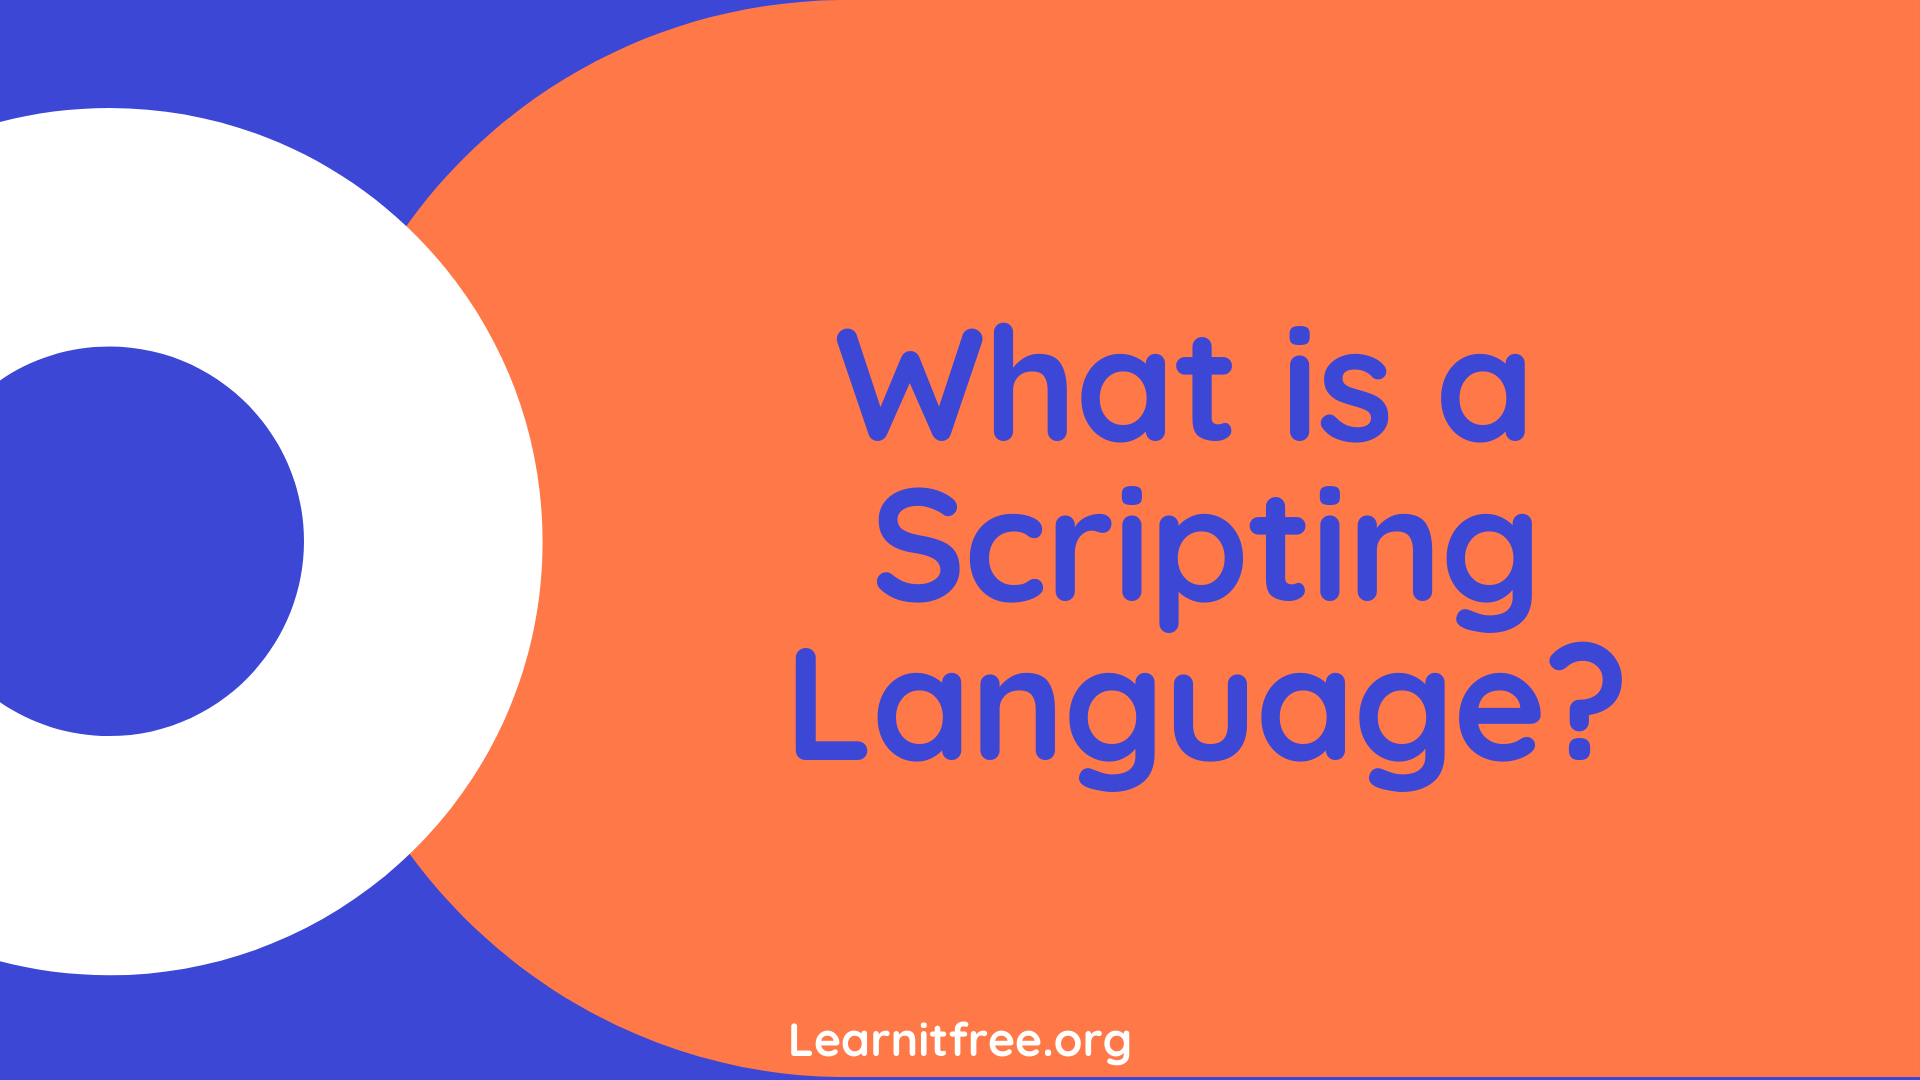 Image describing a Blog Post about What is Scripting Language